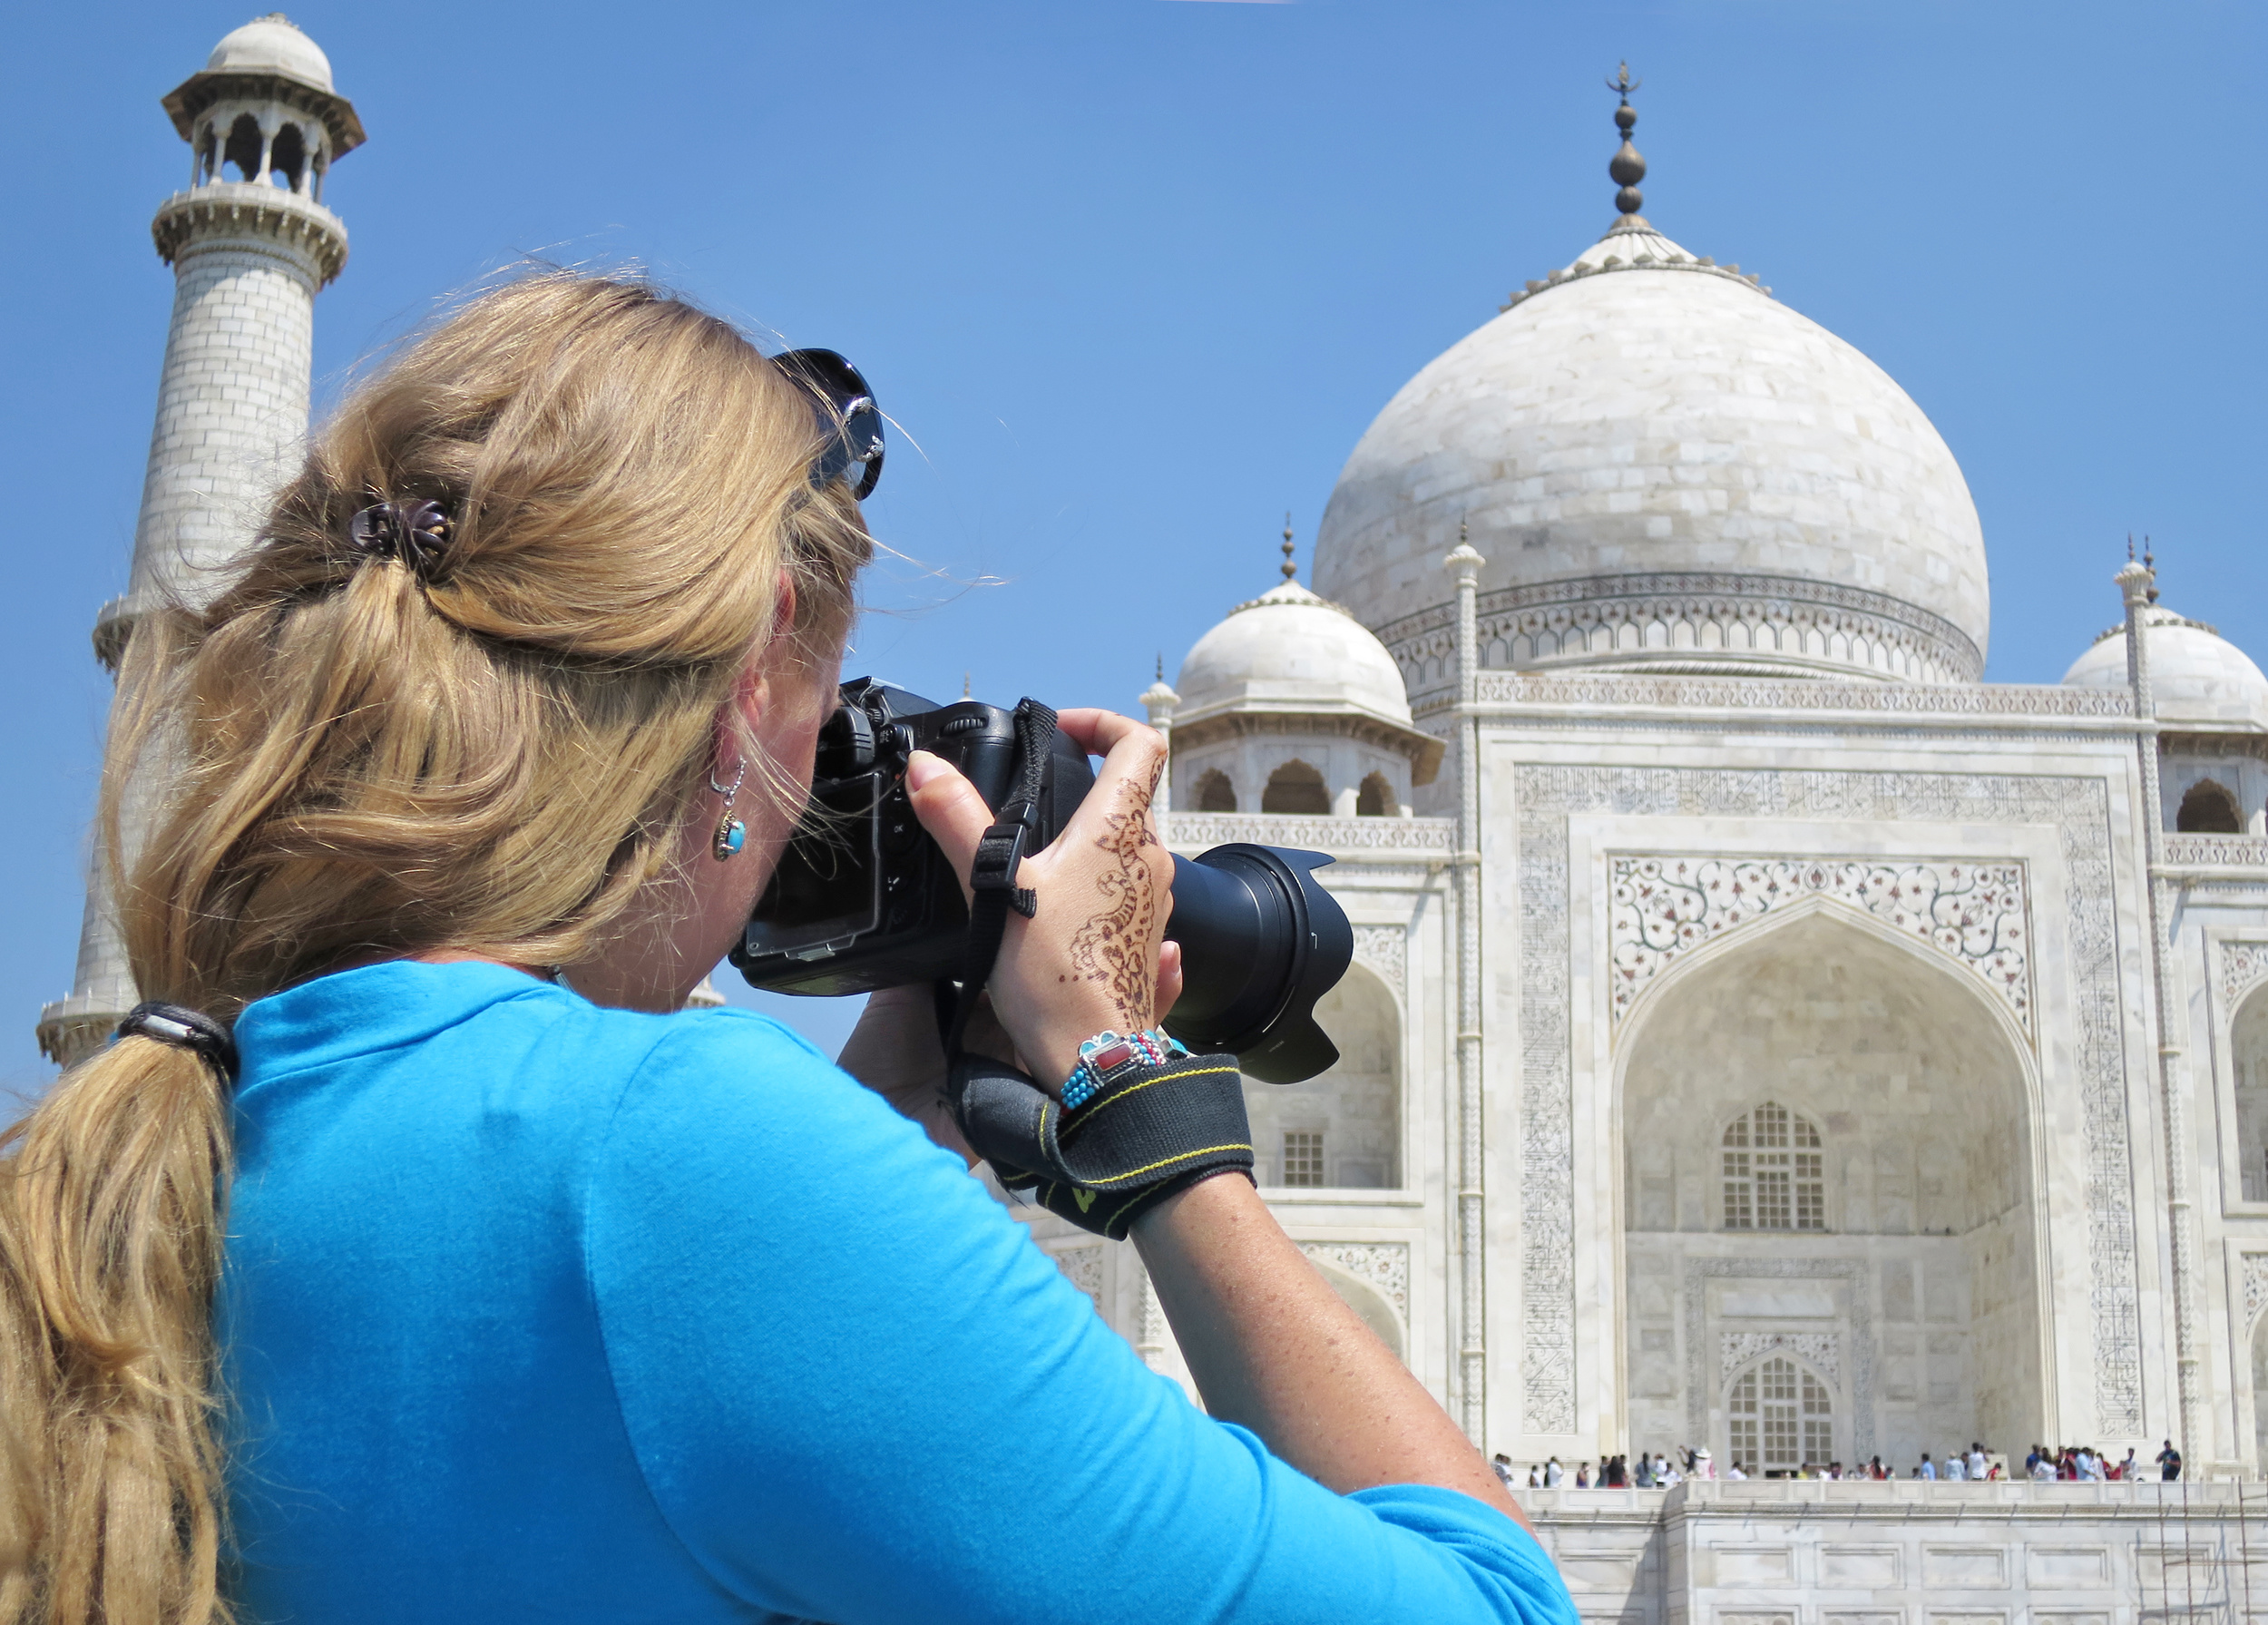 Capturing the Taj Mahal, travel photography